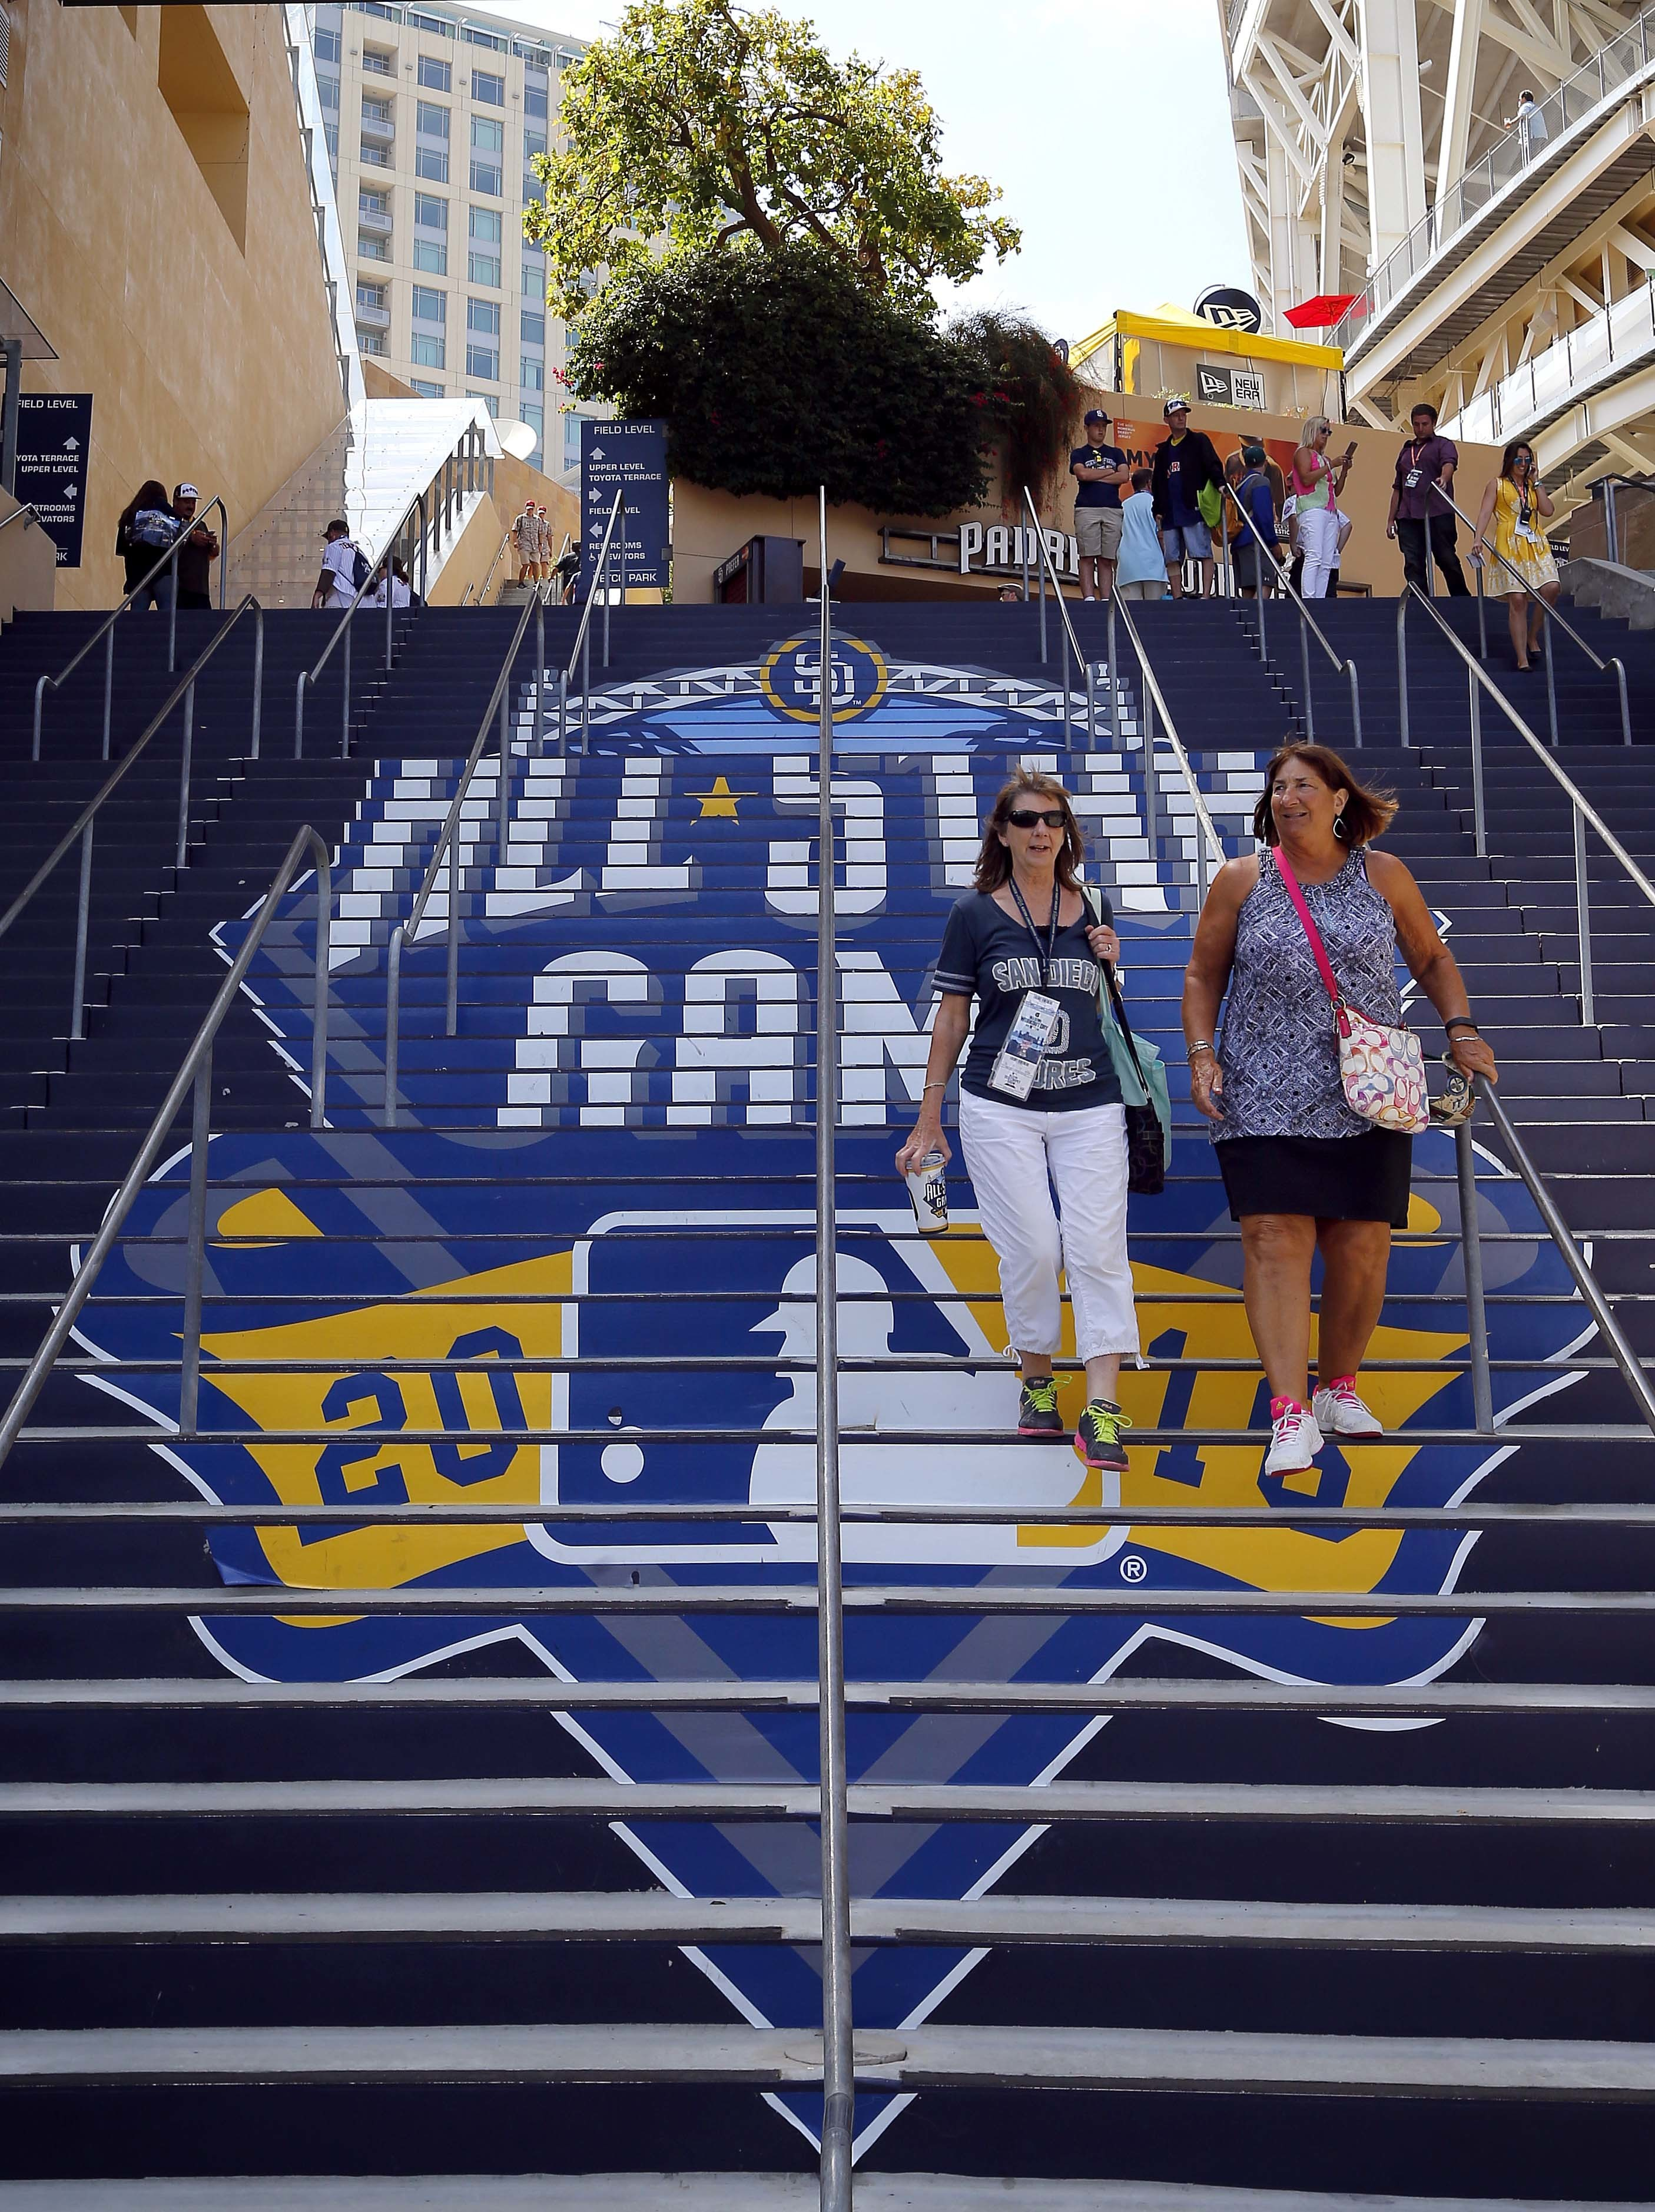 Fans arrive at Petco Park prior to the MLB All-Star baseball Home Run Derby, Monday, July 11, 2016, in San Diego. (AP Photo/Matt York)